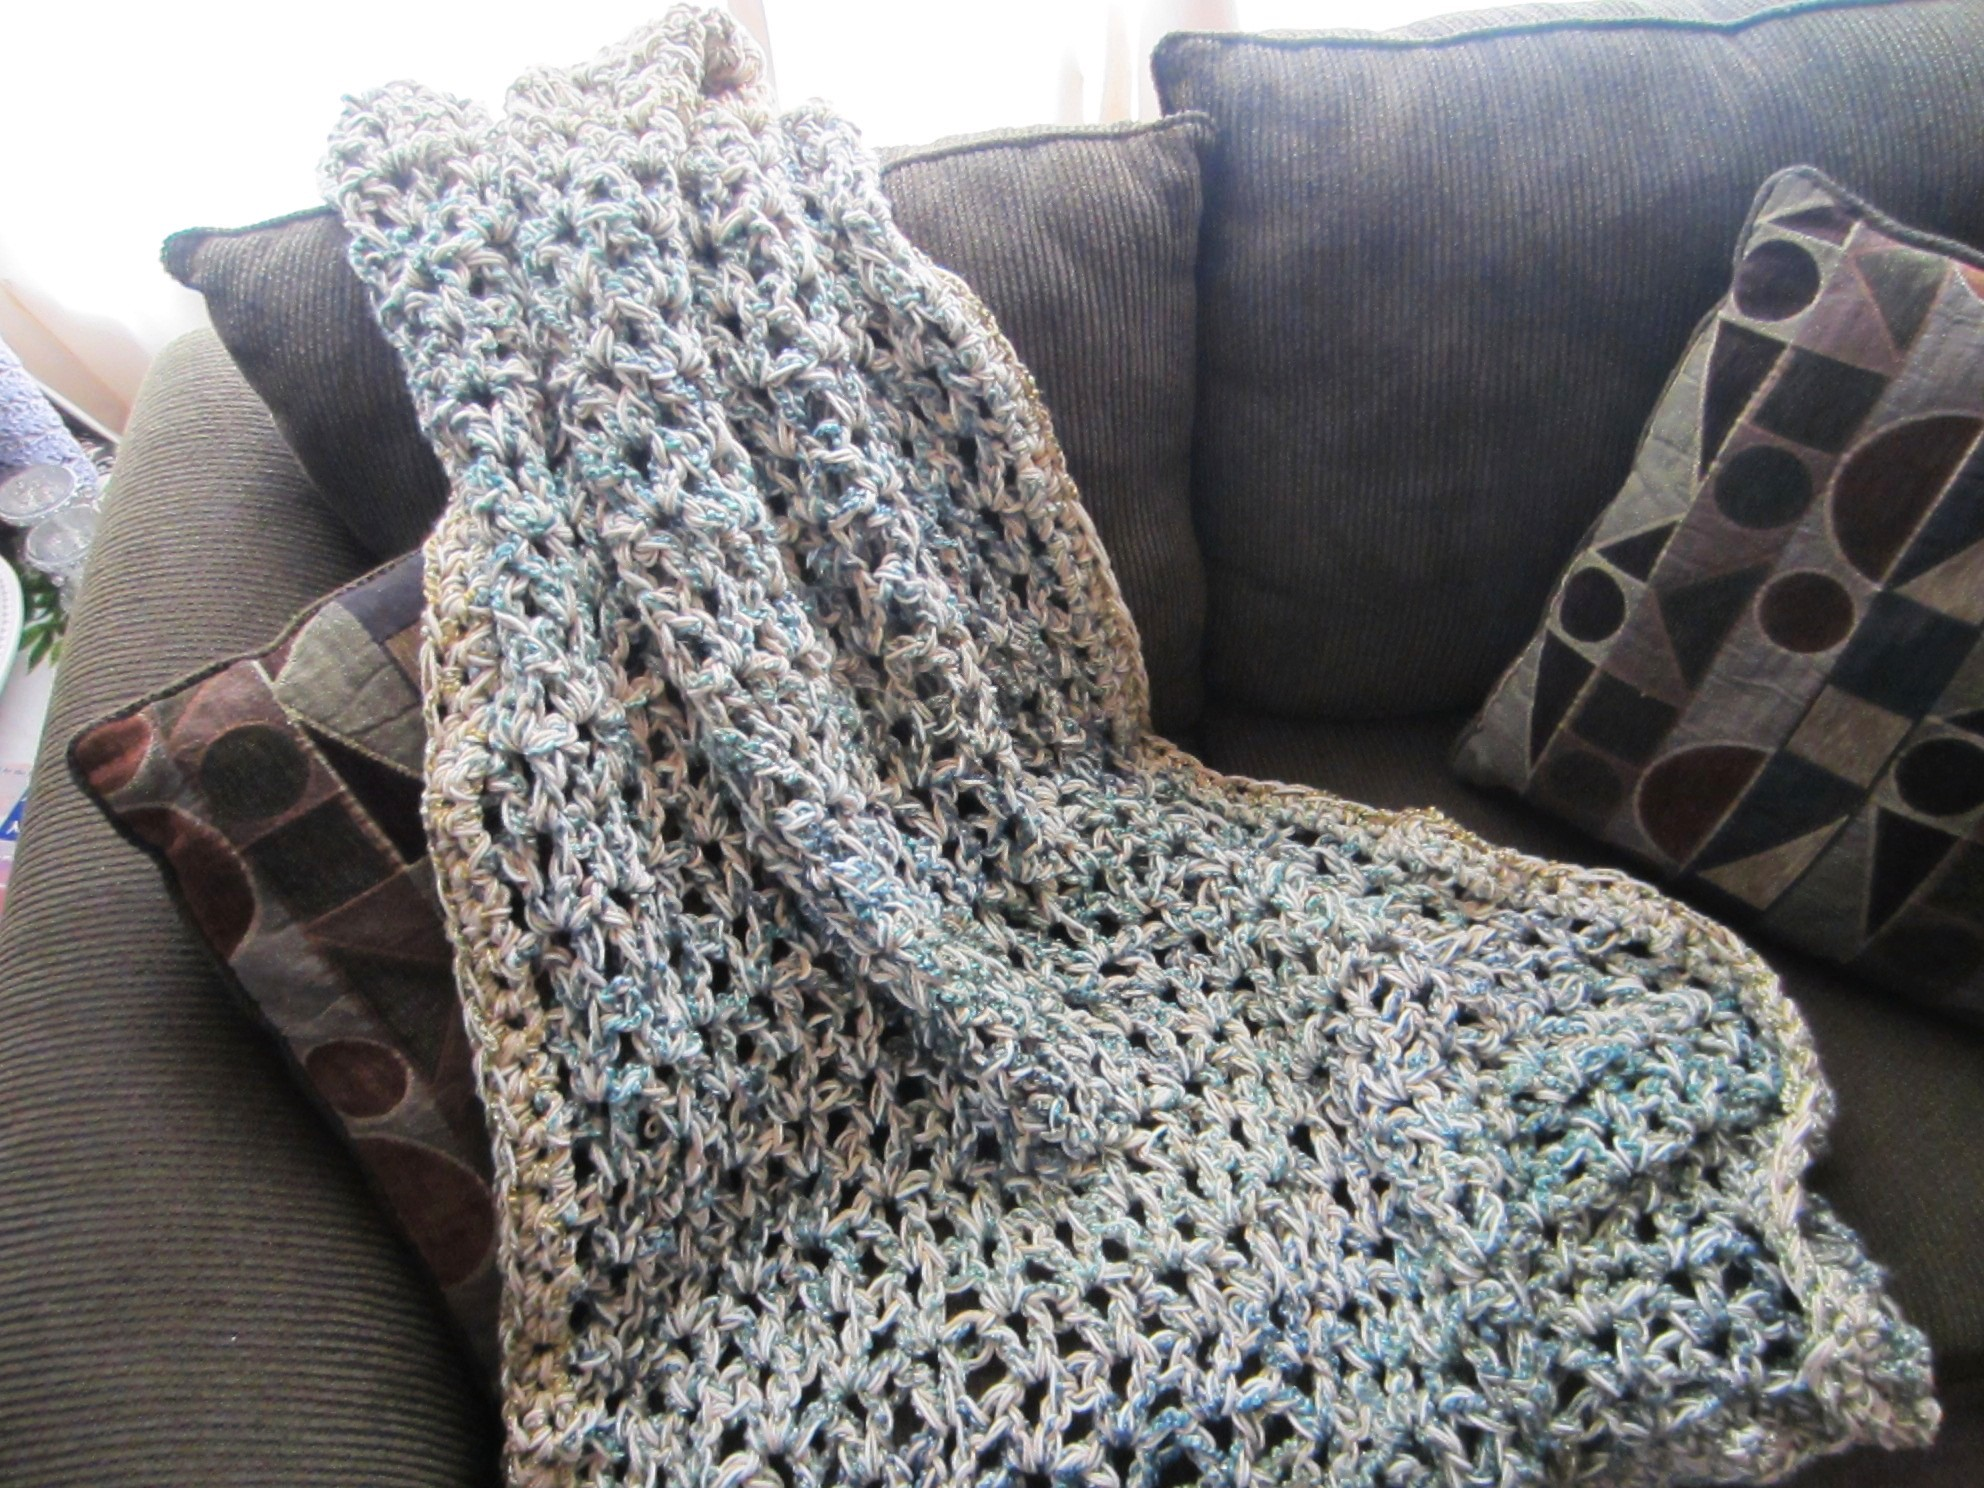 Crochet Afghan Pattern Homespun Yarn : Finished (Destash) Project . . . Crochet Throw G-Ma ...